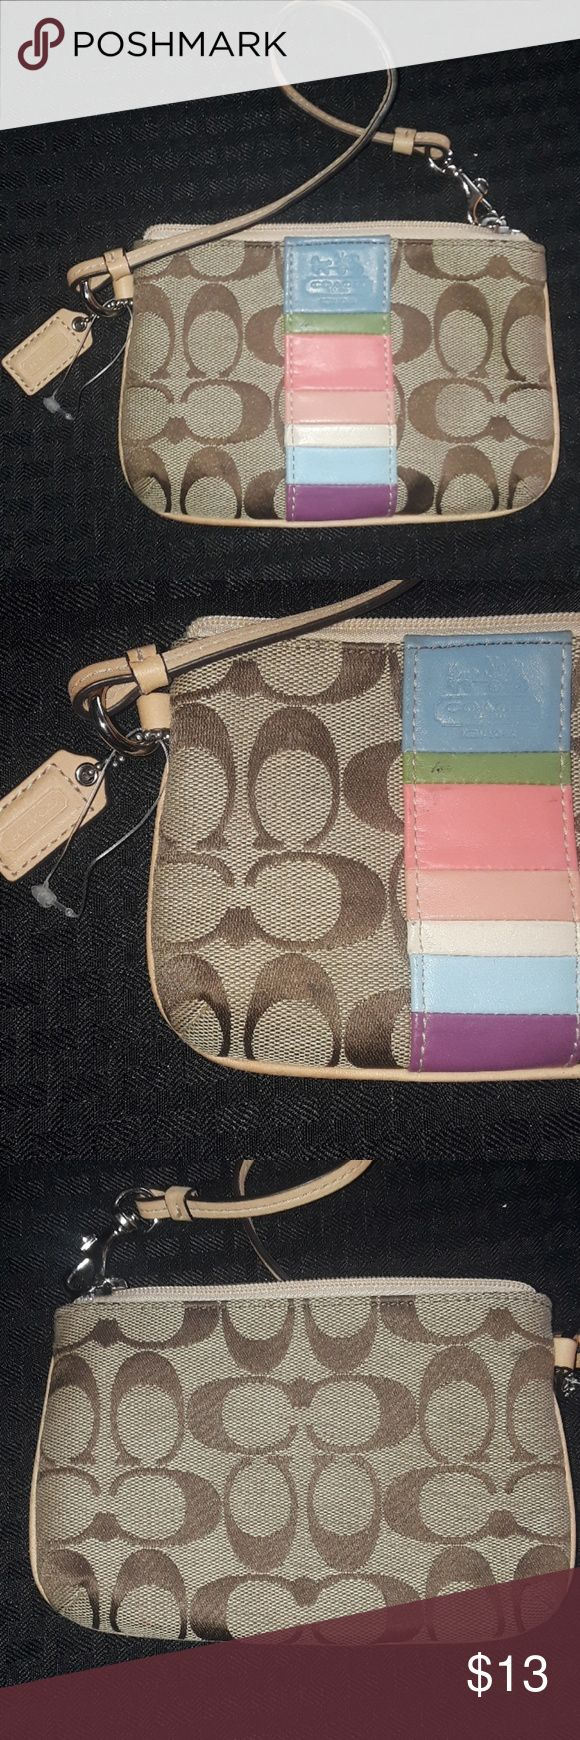 Coach Wristlet Brown with Colorful Design Coach Wristlet Used few times Purchased on TopHatter Coach Accessories Key & Card Holders